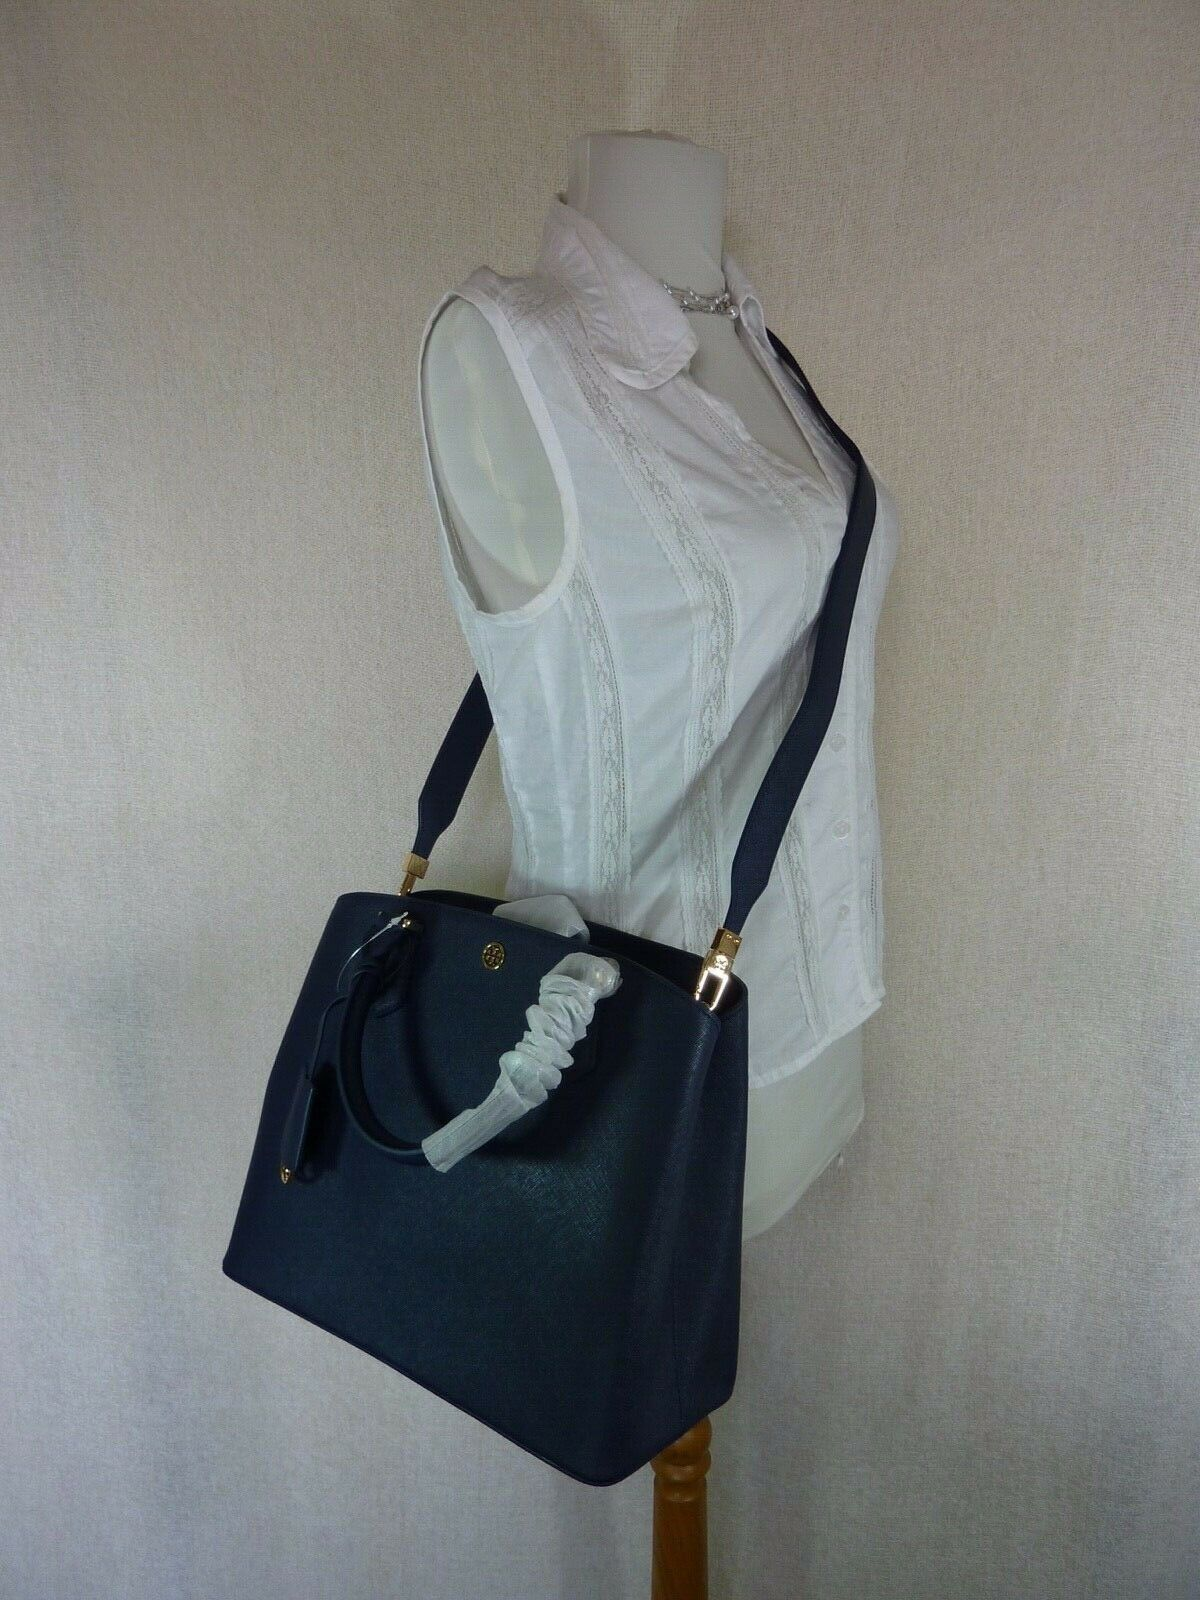 NWT Tory Burch Navy Saffiano Leather Robinson Triple-compartment Tote $458 image 11